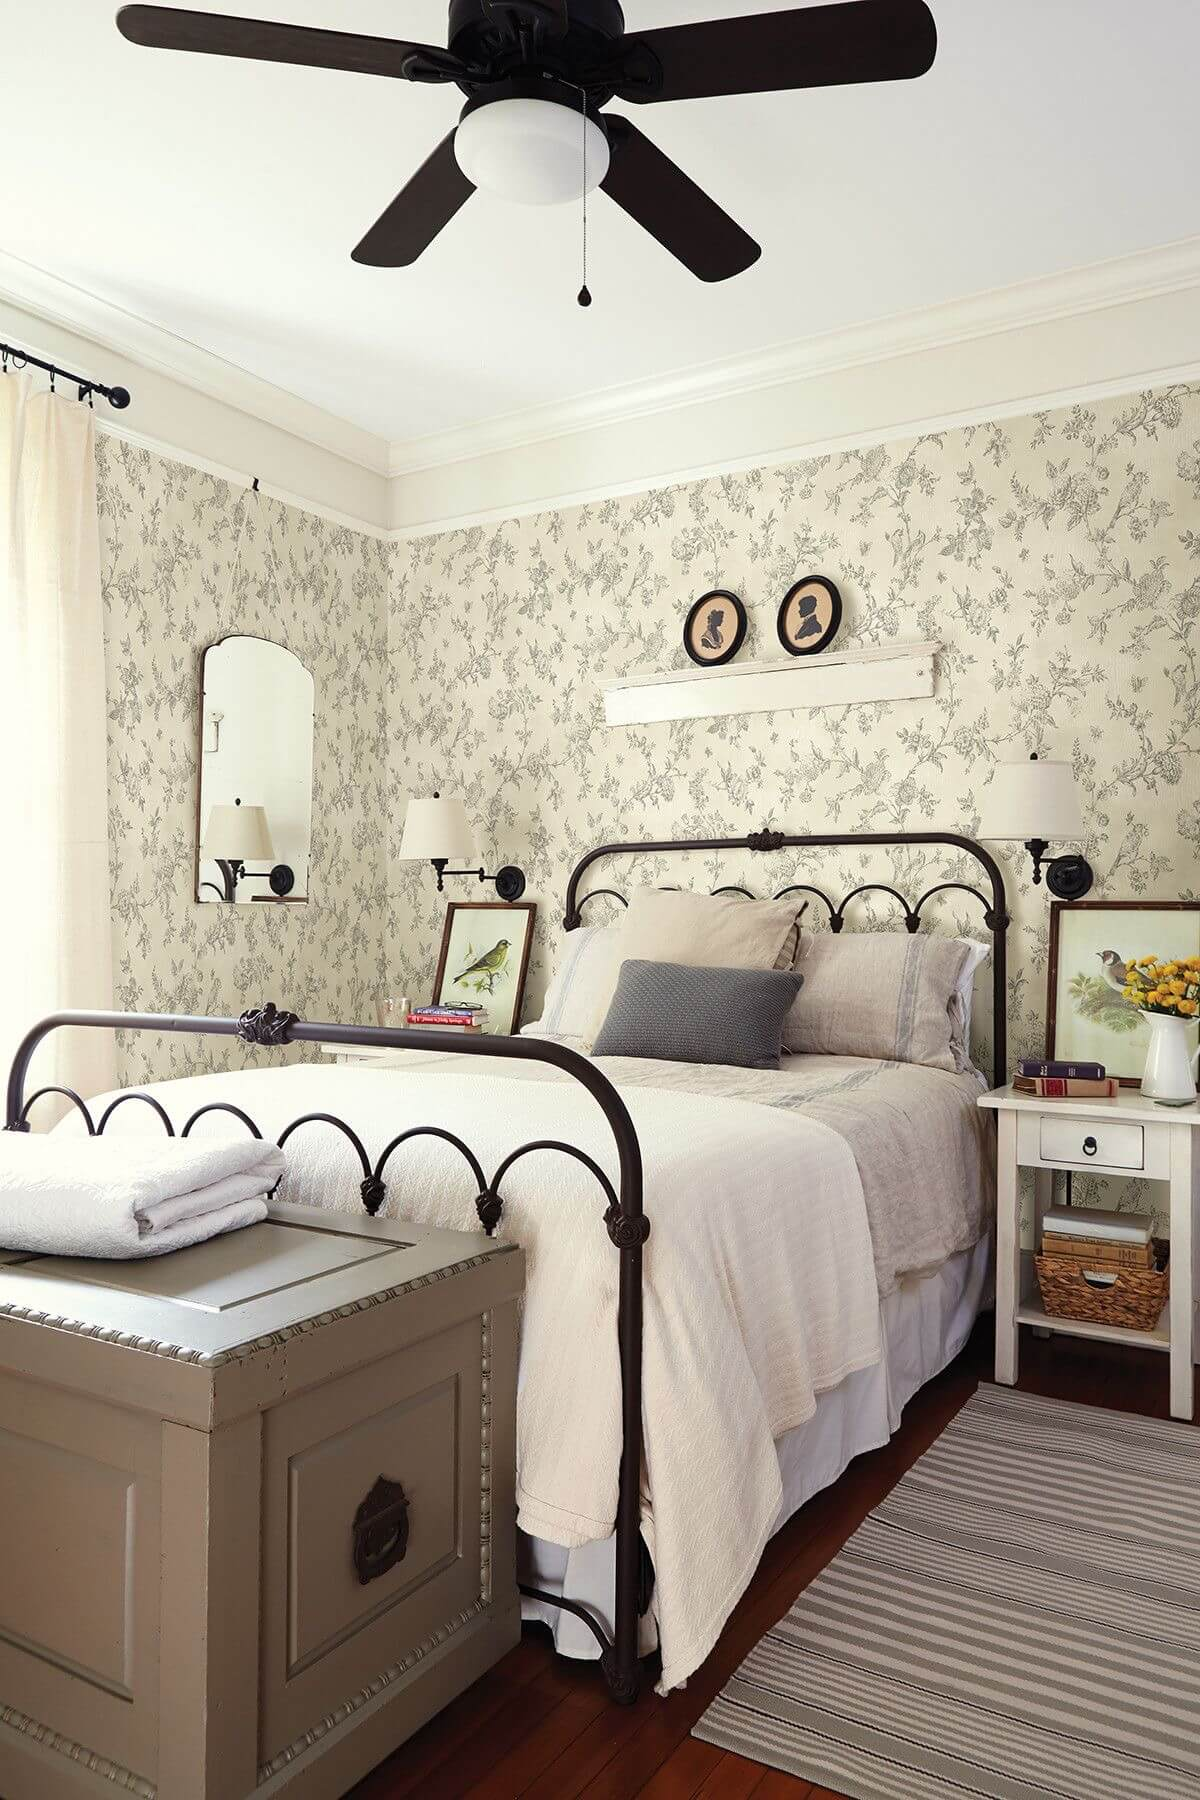 Pretty Wrought Iron Bedframe and White Linens